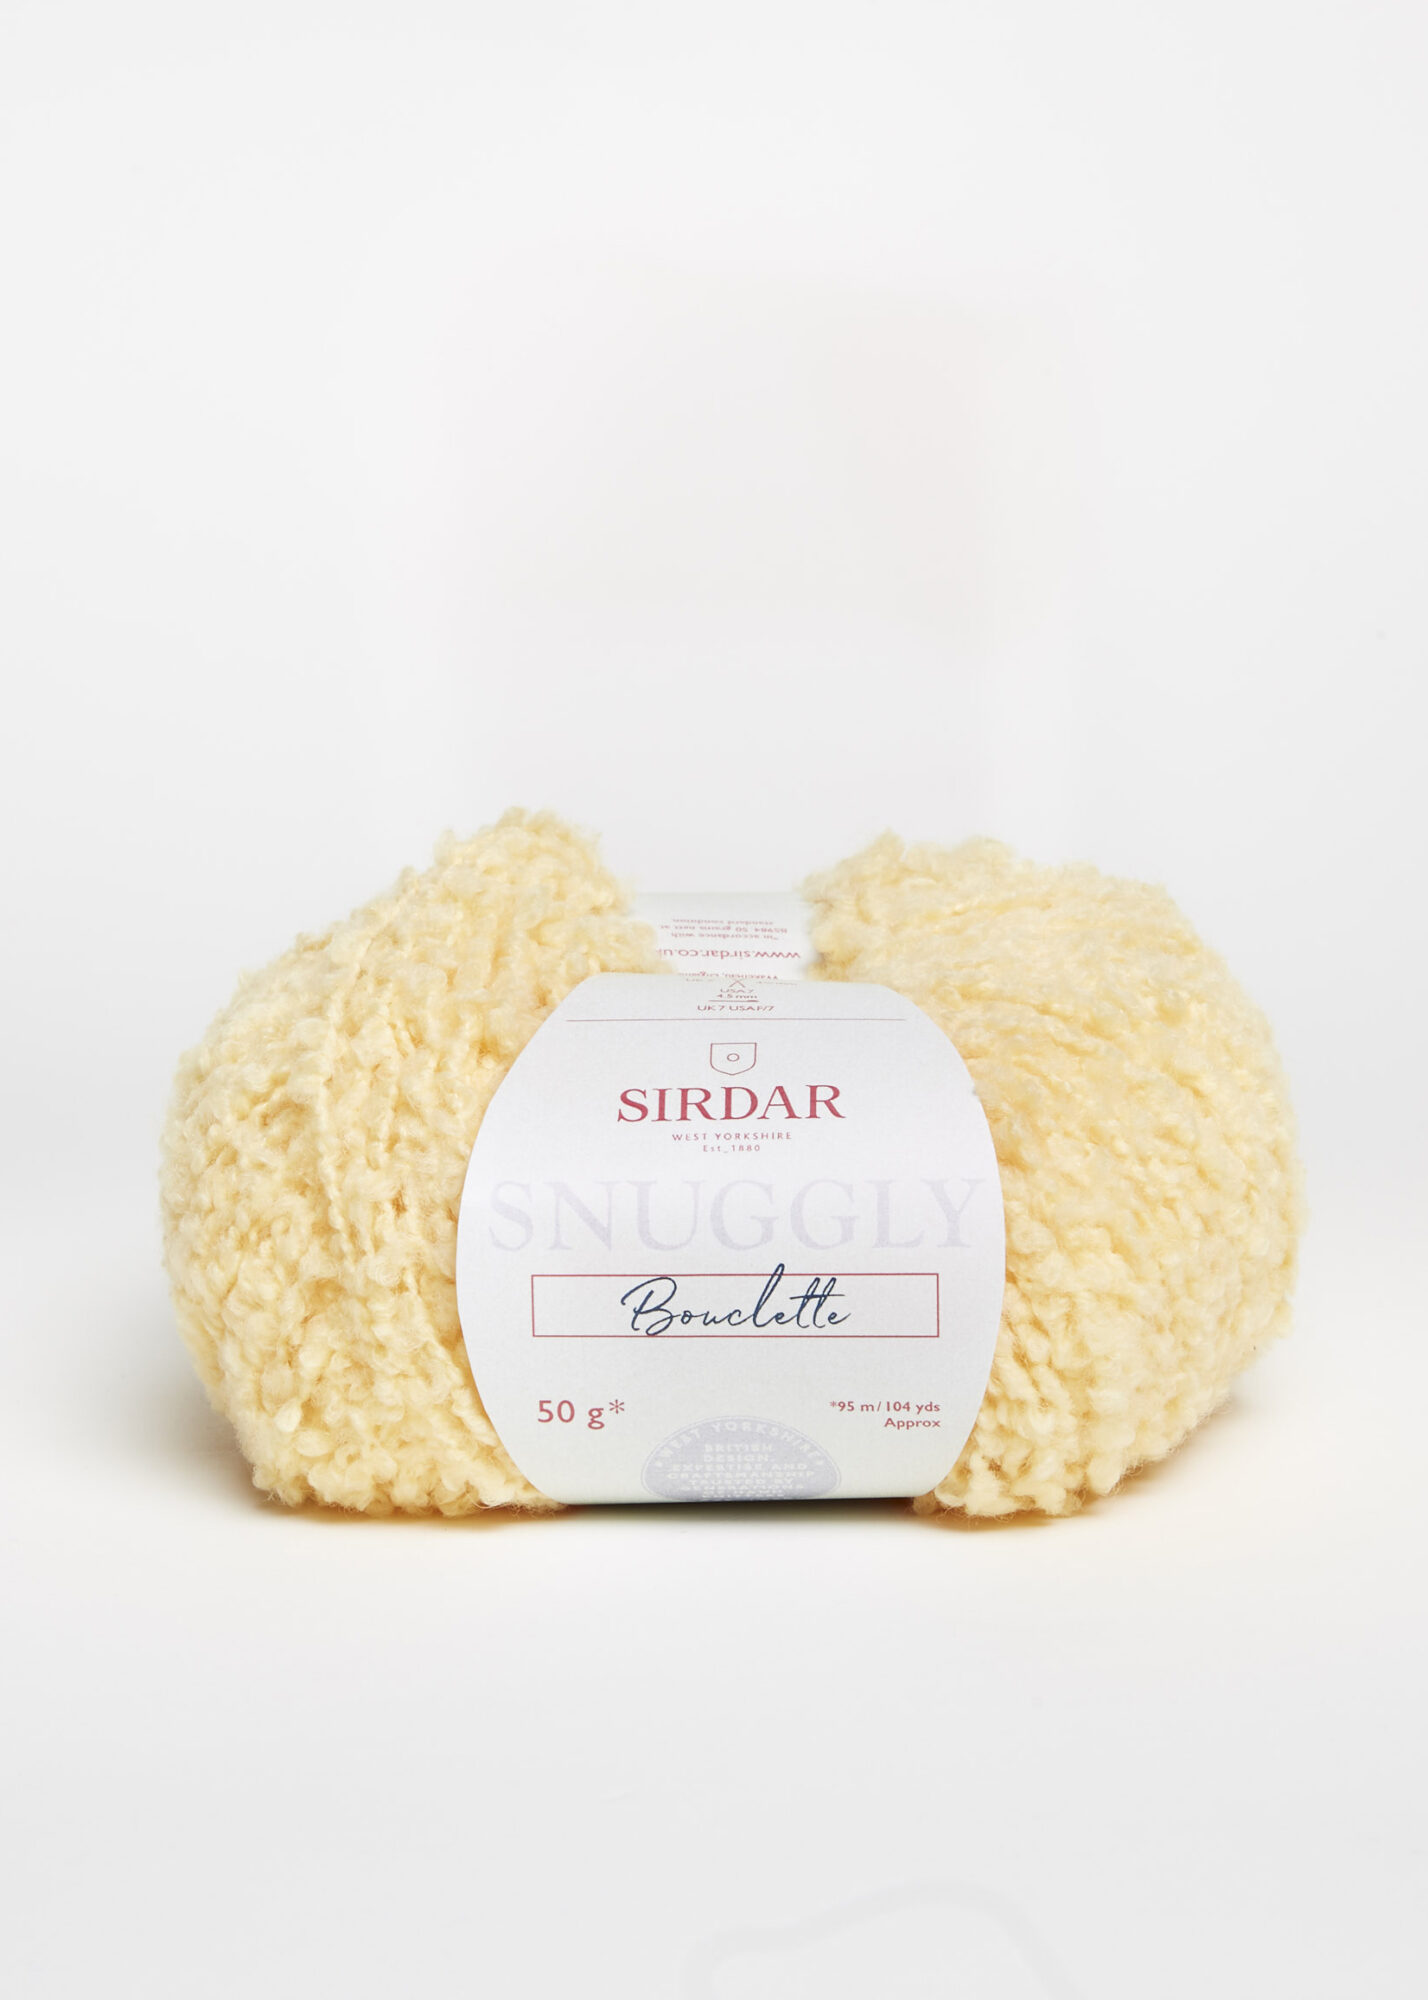 Sirdar Bouclette product image